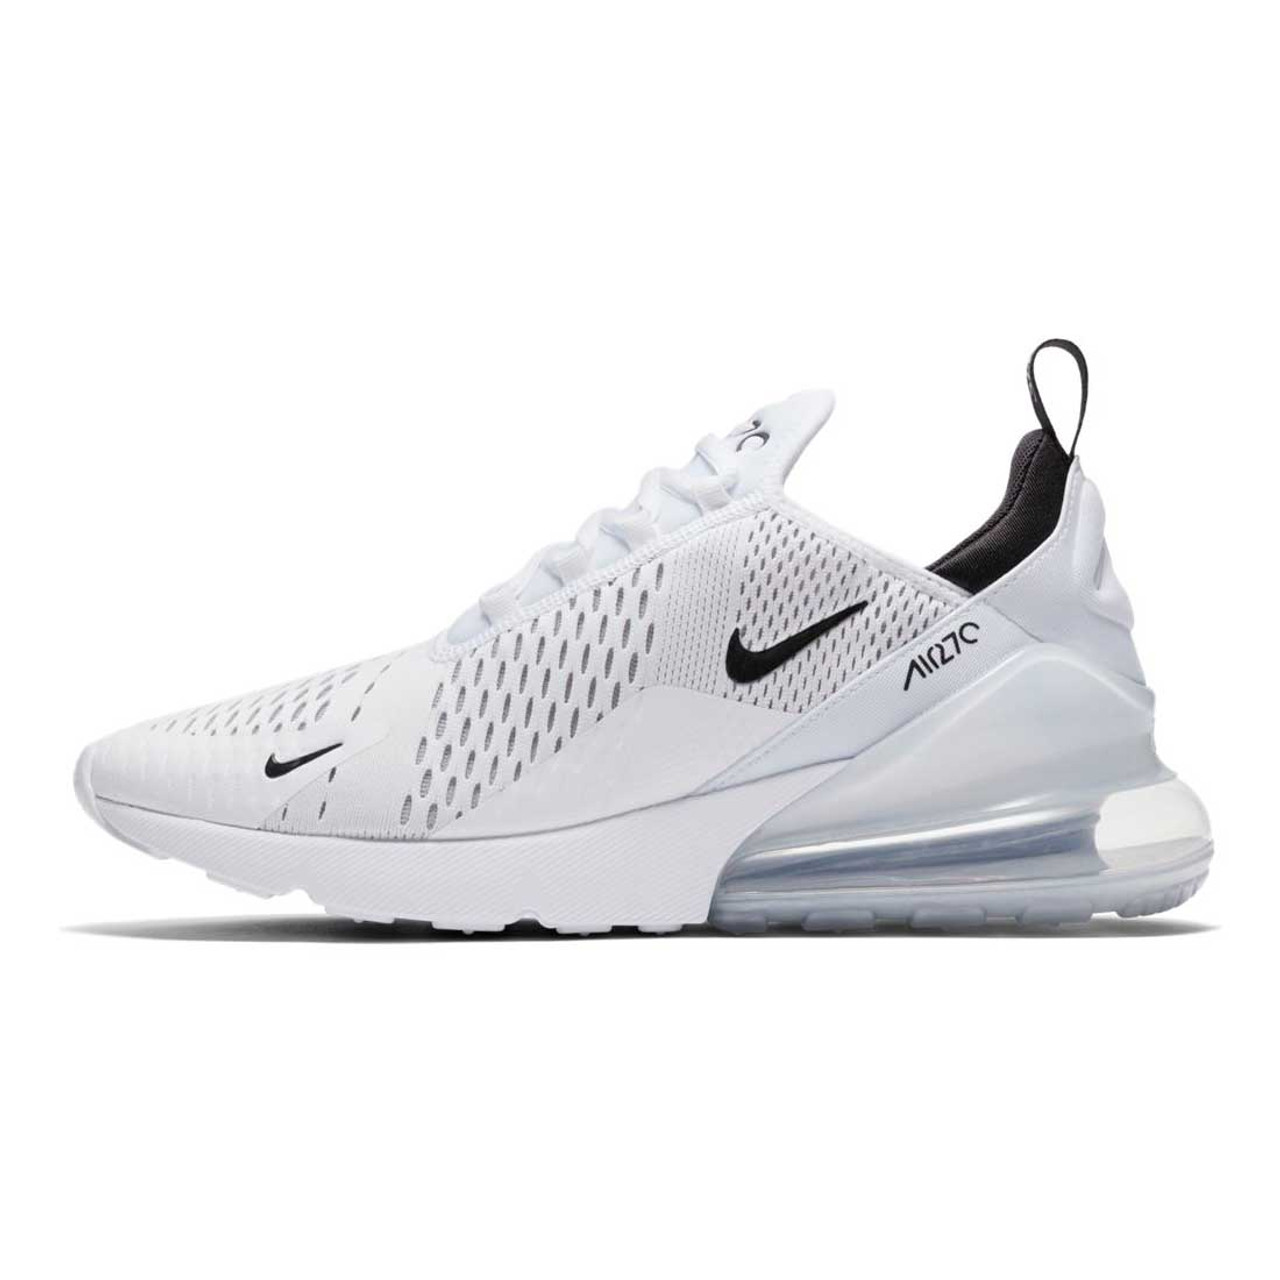 735e988442fe9 Men's White/Black Air Max 270 Shoes - TYLER'S